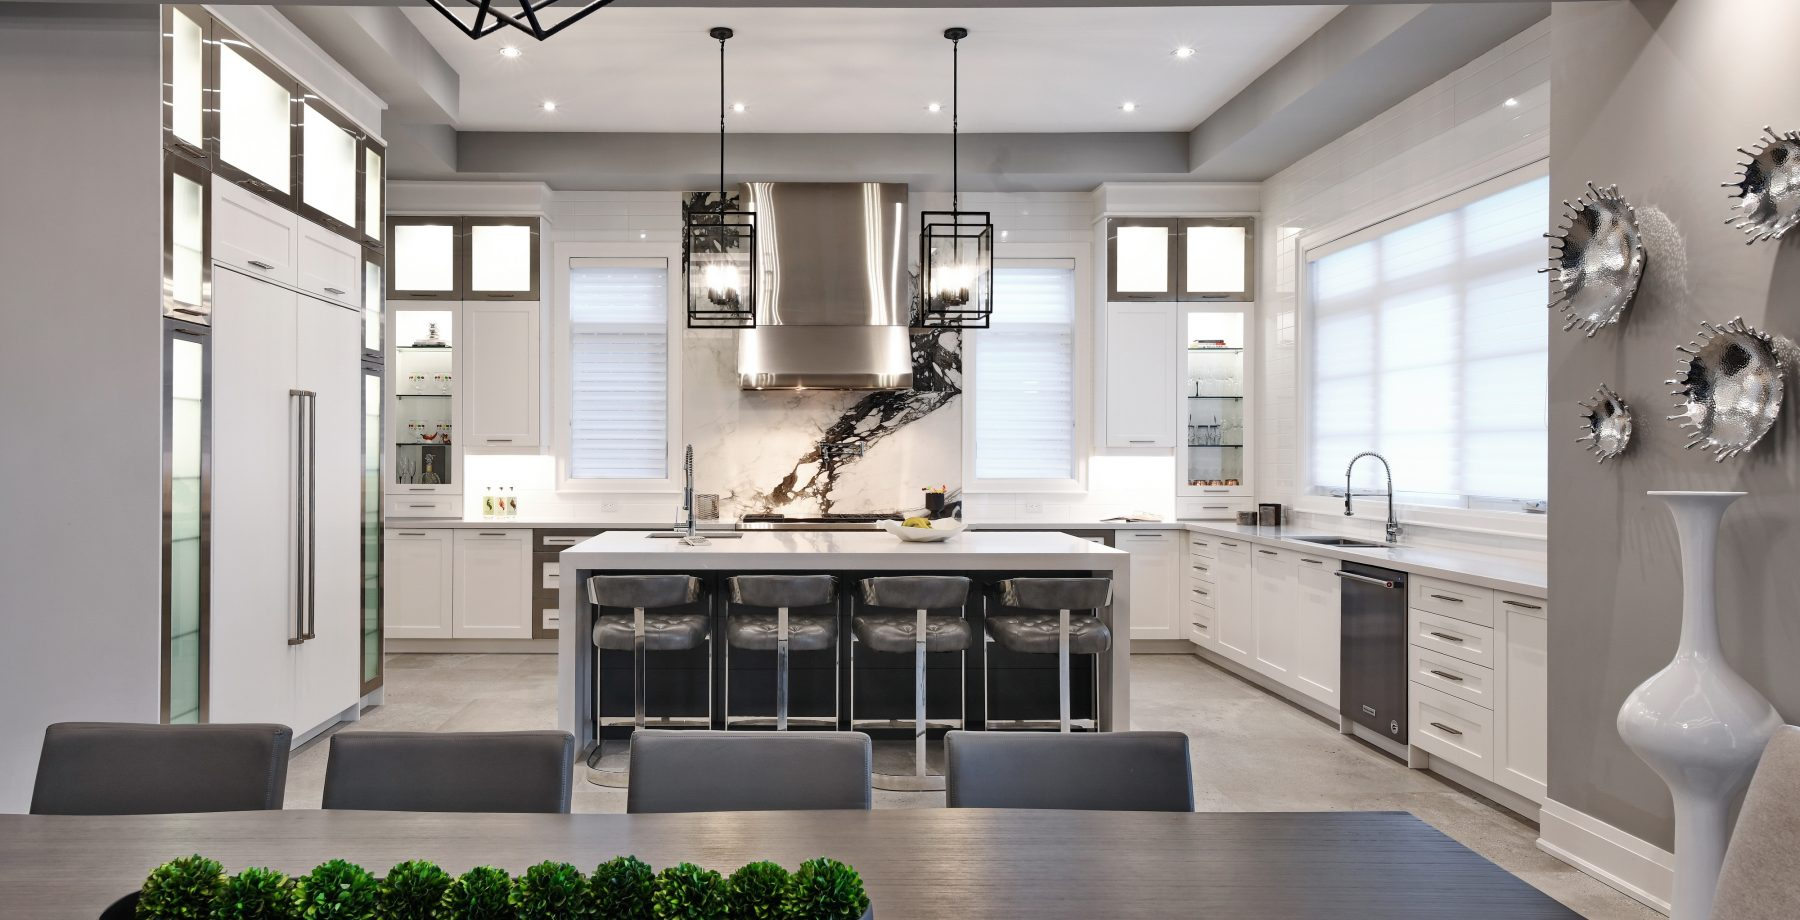 Home | Selba Kitchens & Baths is a Canadian based company ...